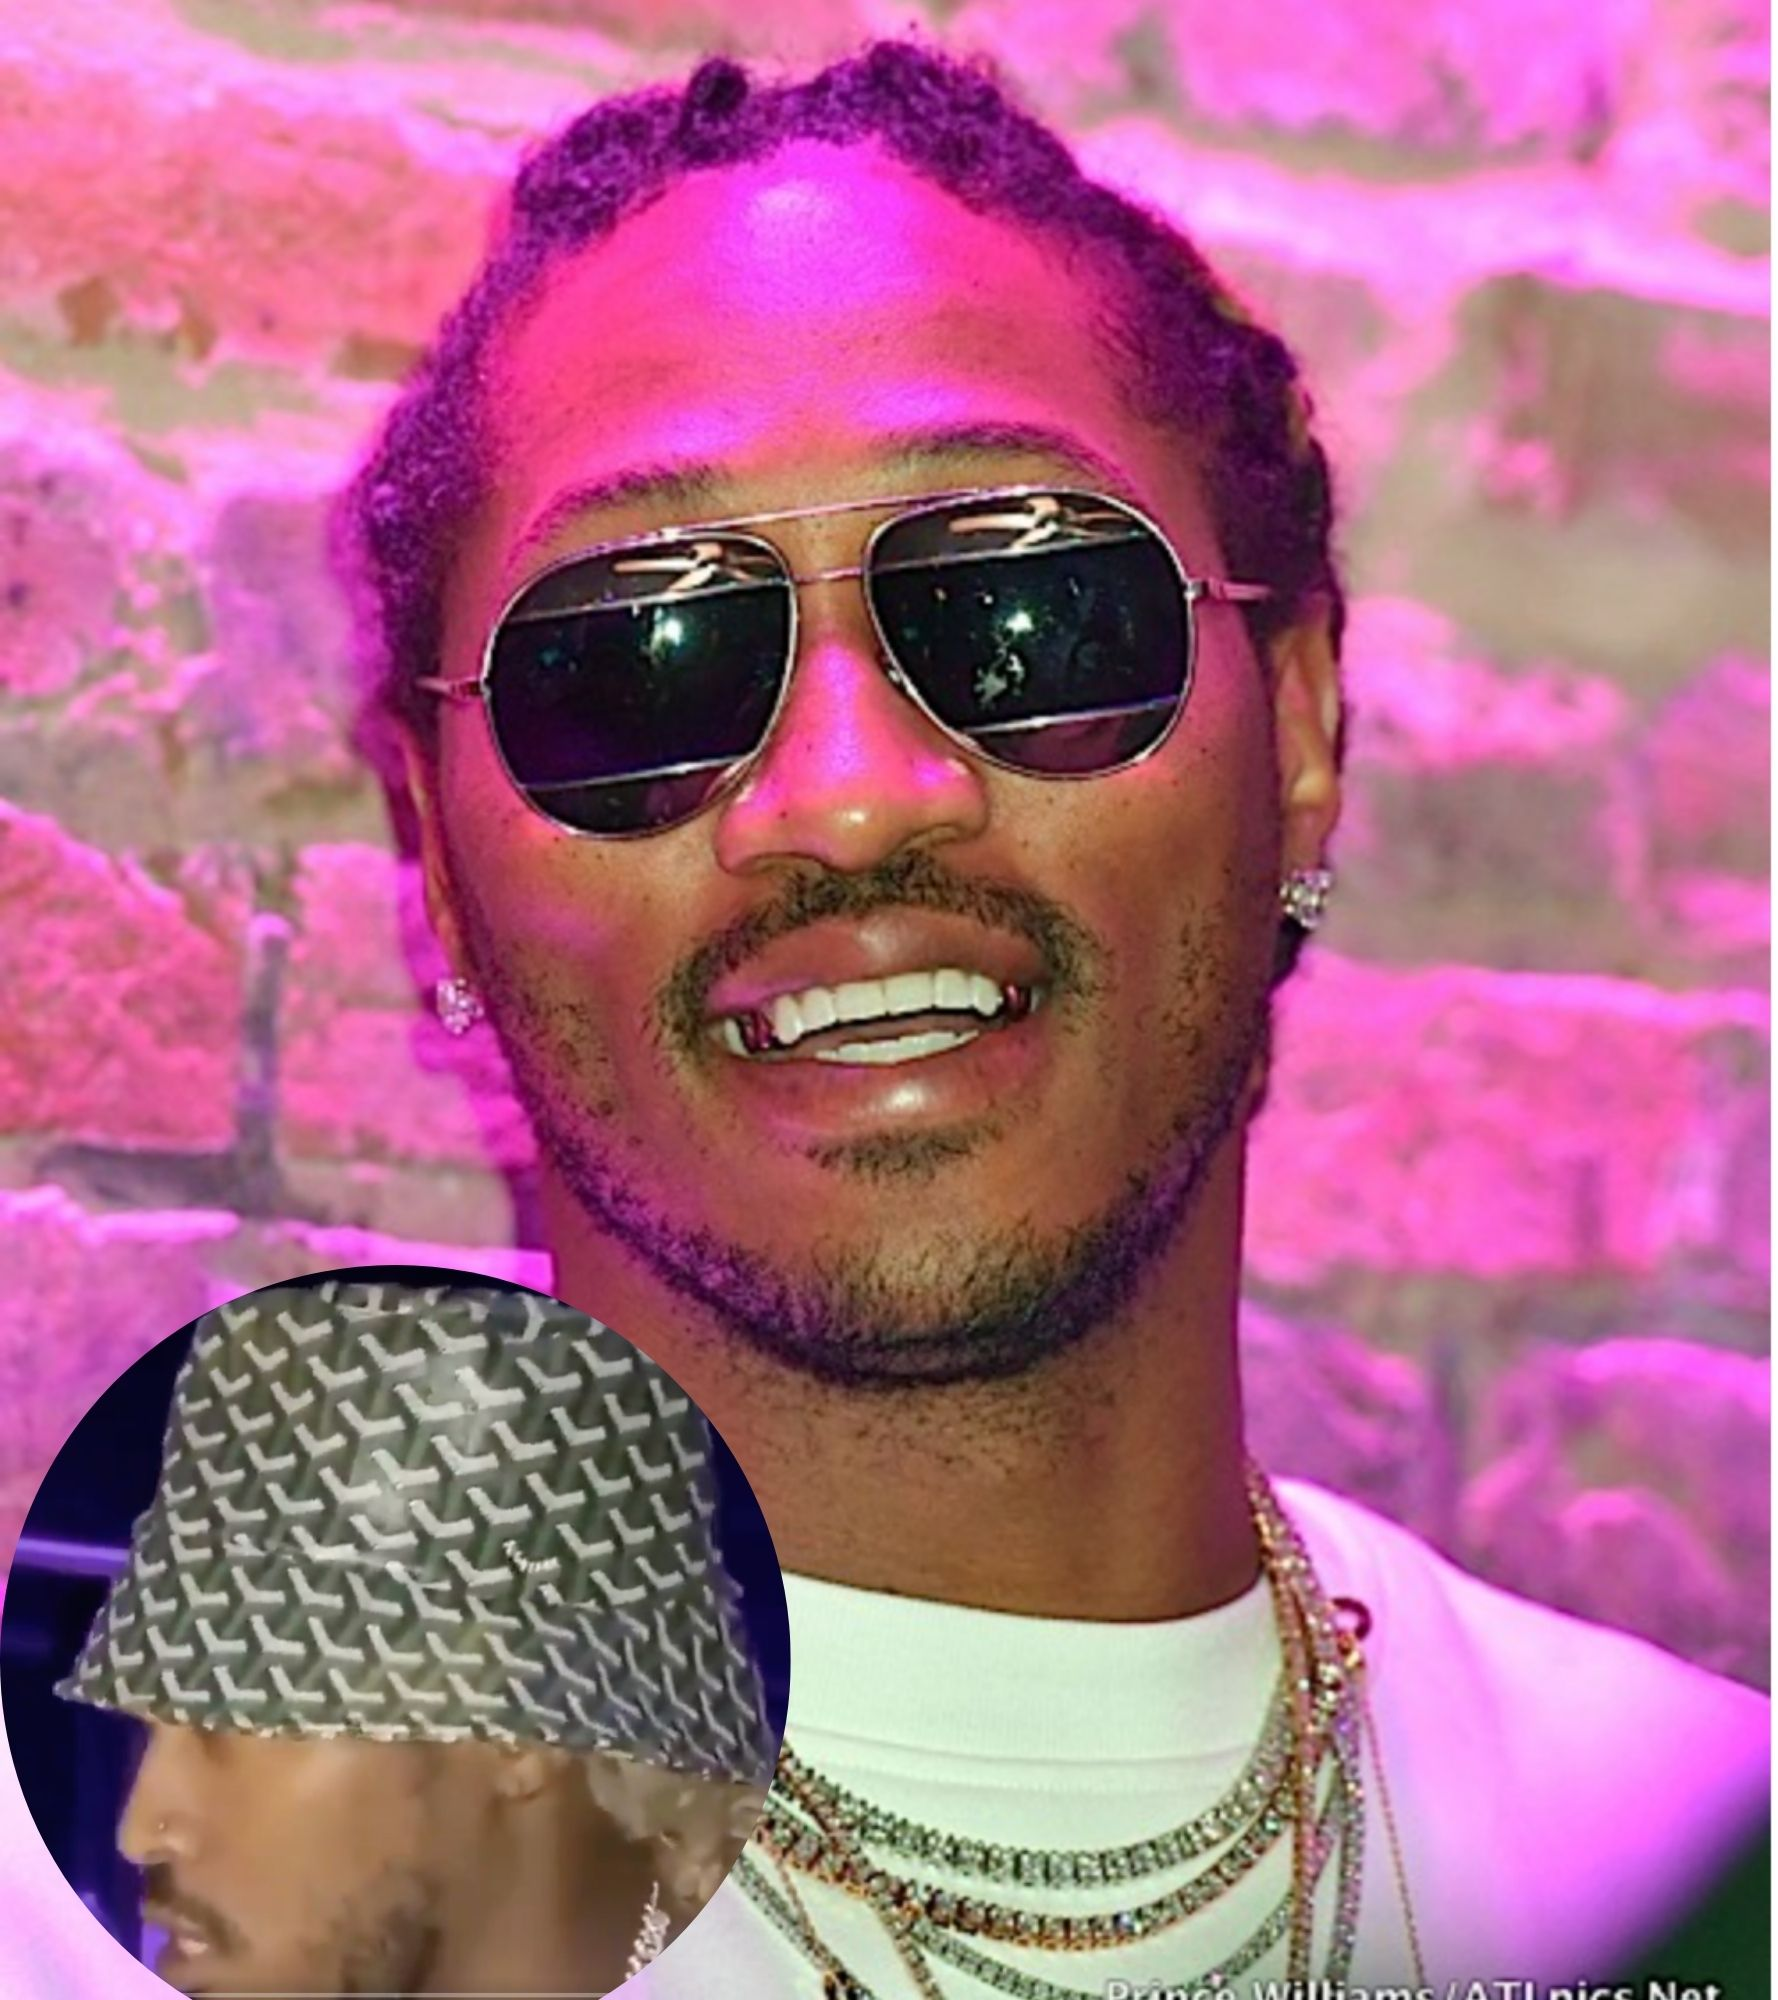 Future Teases New Track Gucci Bucket Hat Wearing A Goyard Hat Some Fans Are Confused Thejasminebrand